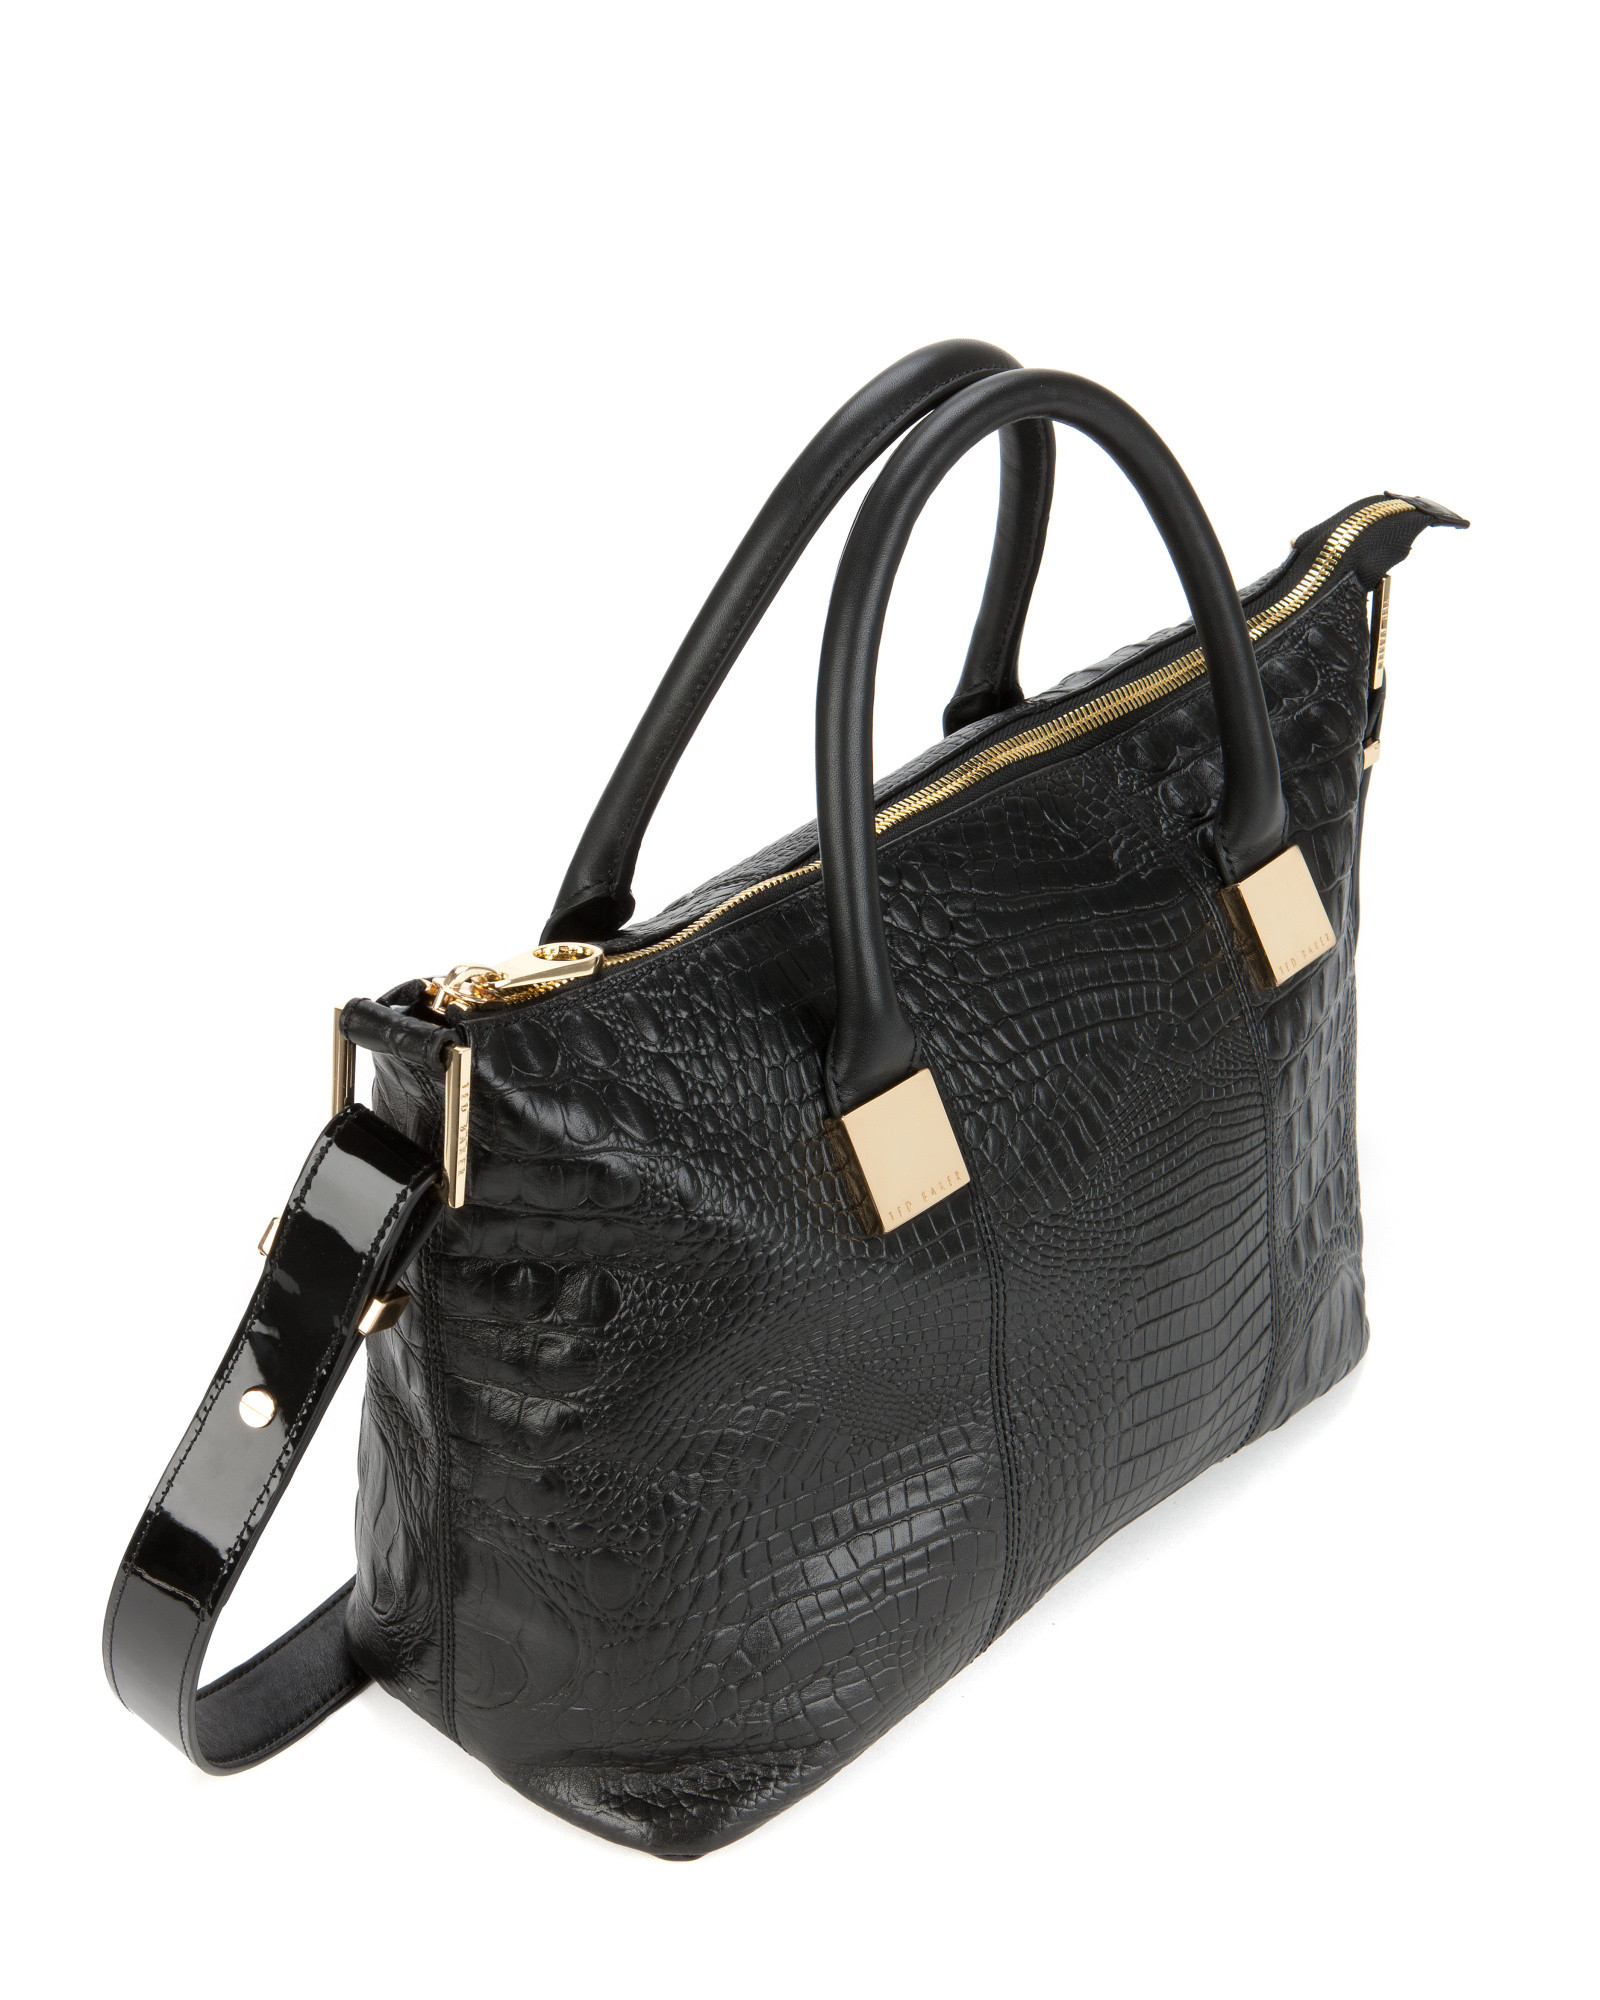 ed7a87d50b0 Ted Baker Crocer Exotic Leather Tote Bag in Black - Lyst